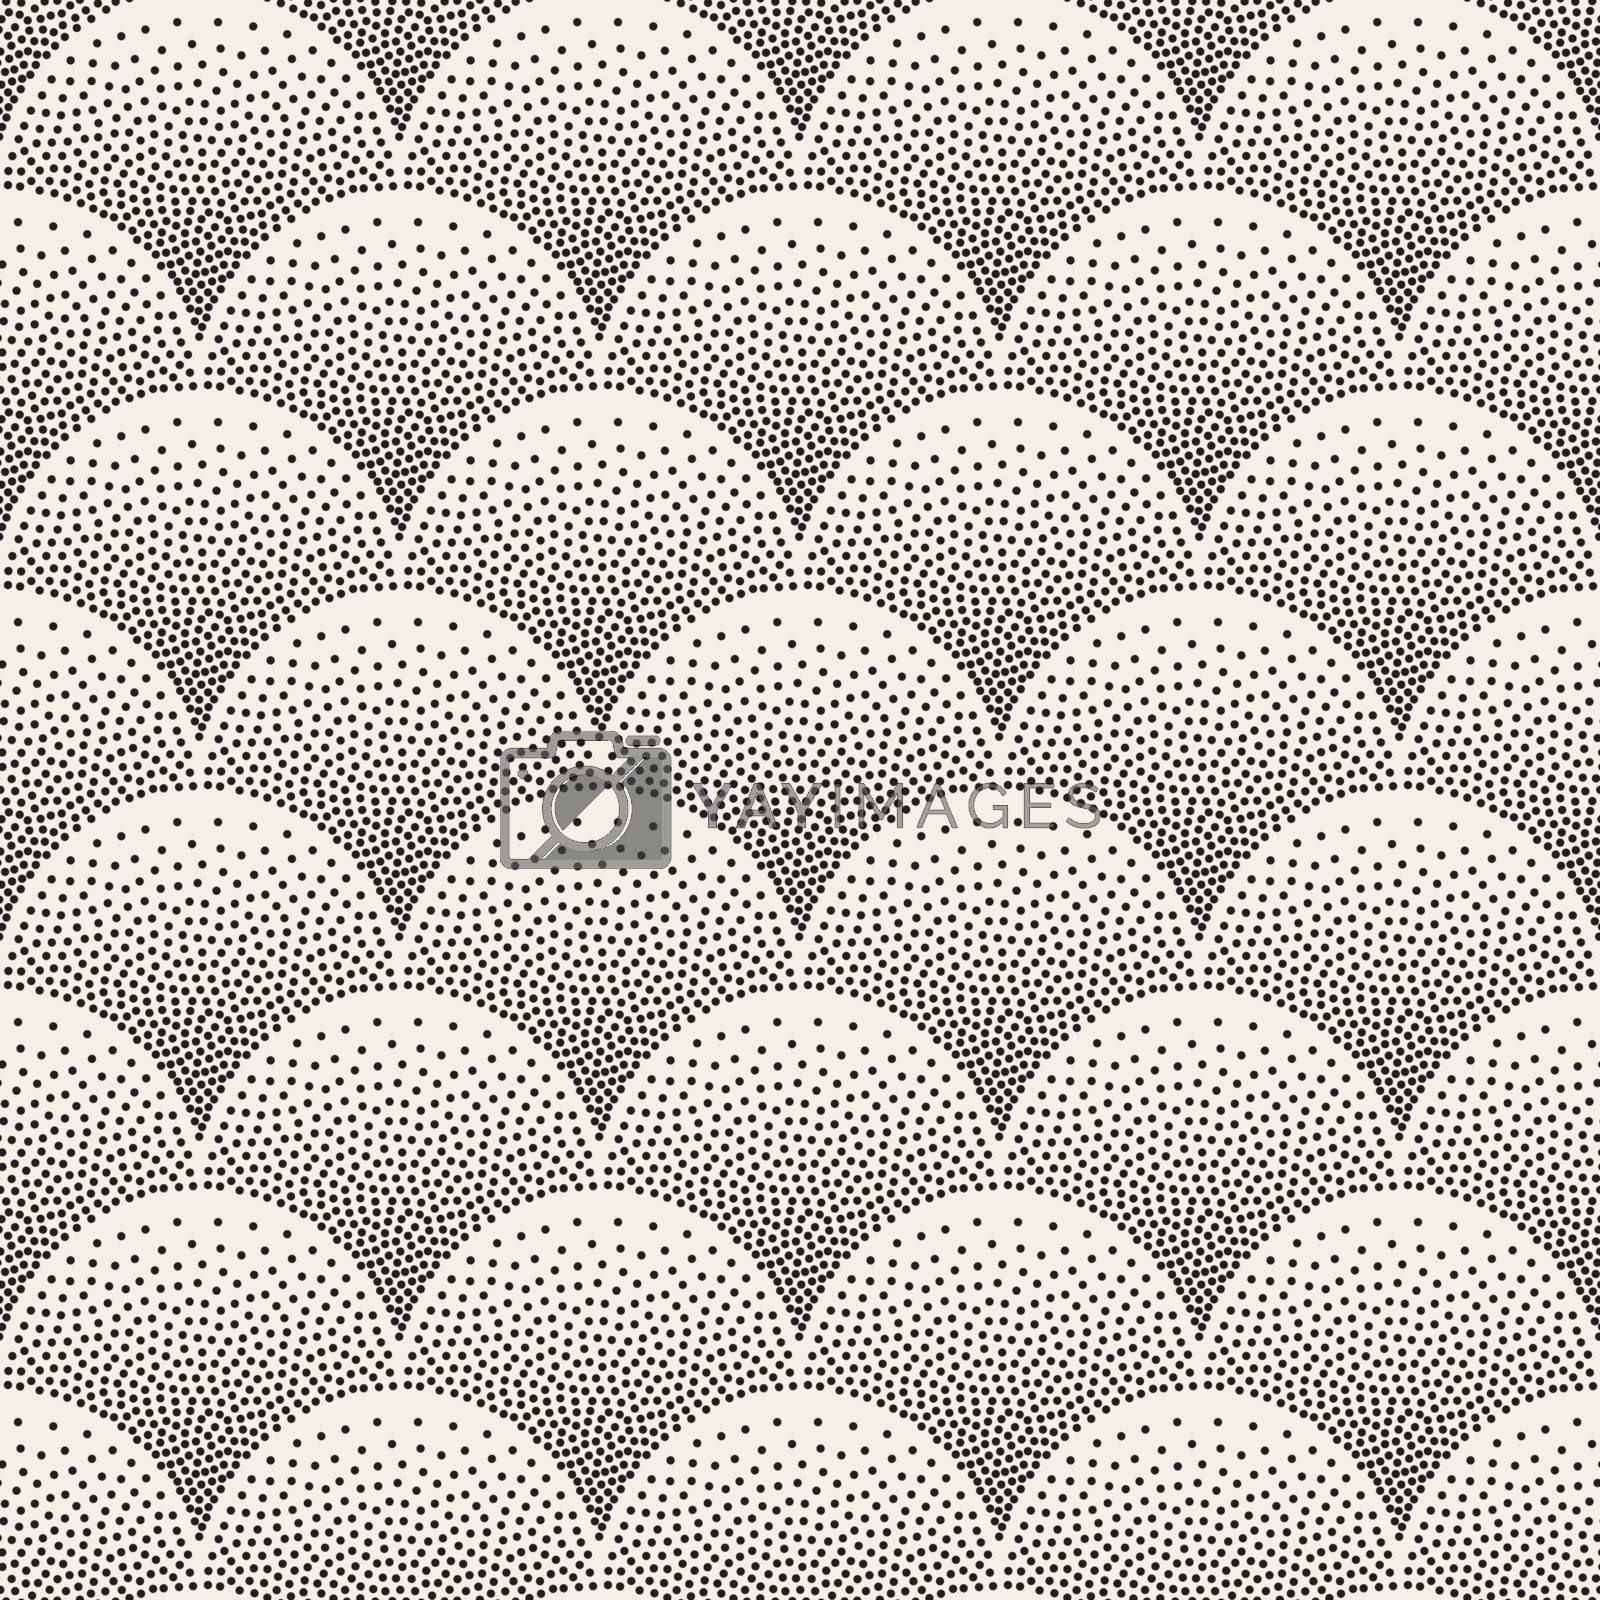 Vector Seamless Black and White Arc Shapes Stippling Pattern. Abstract Dotwork Background Design